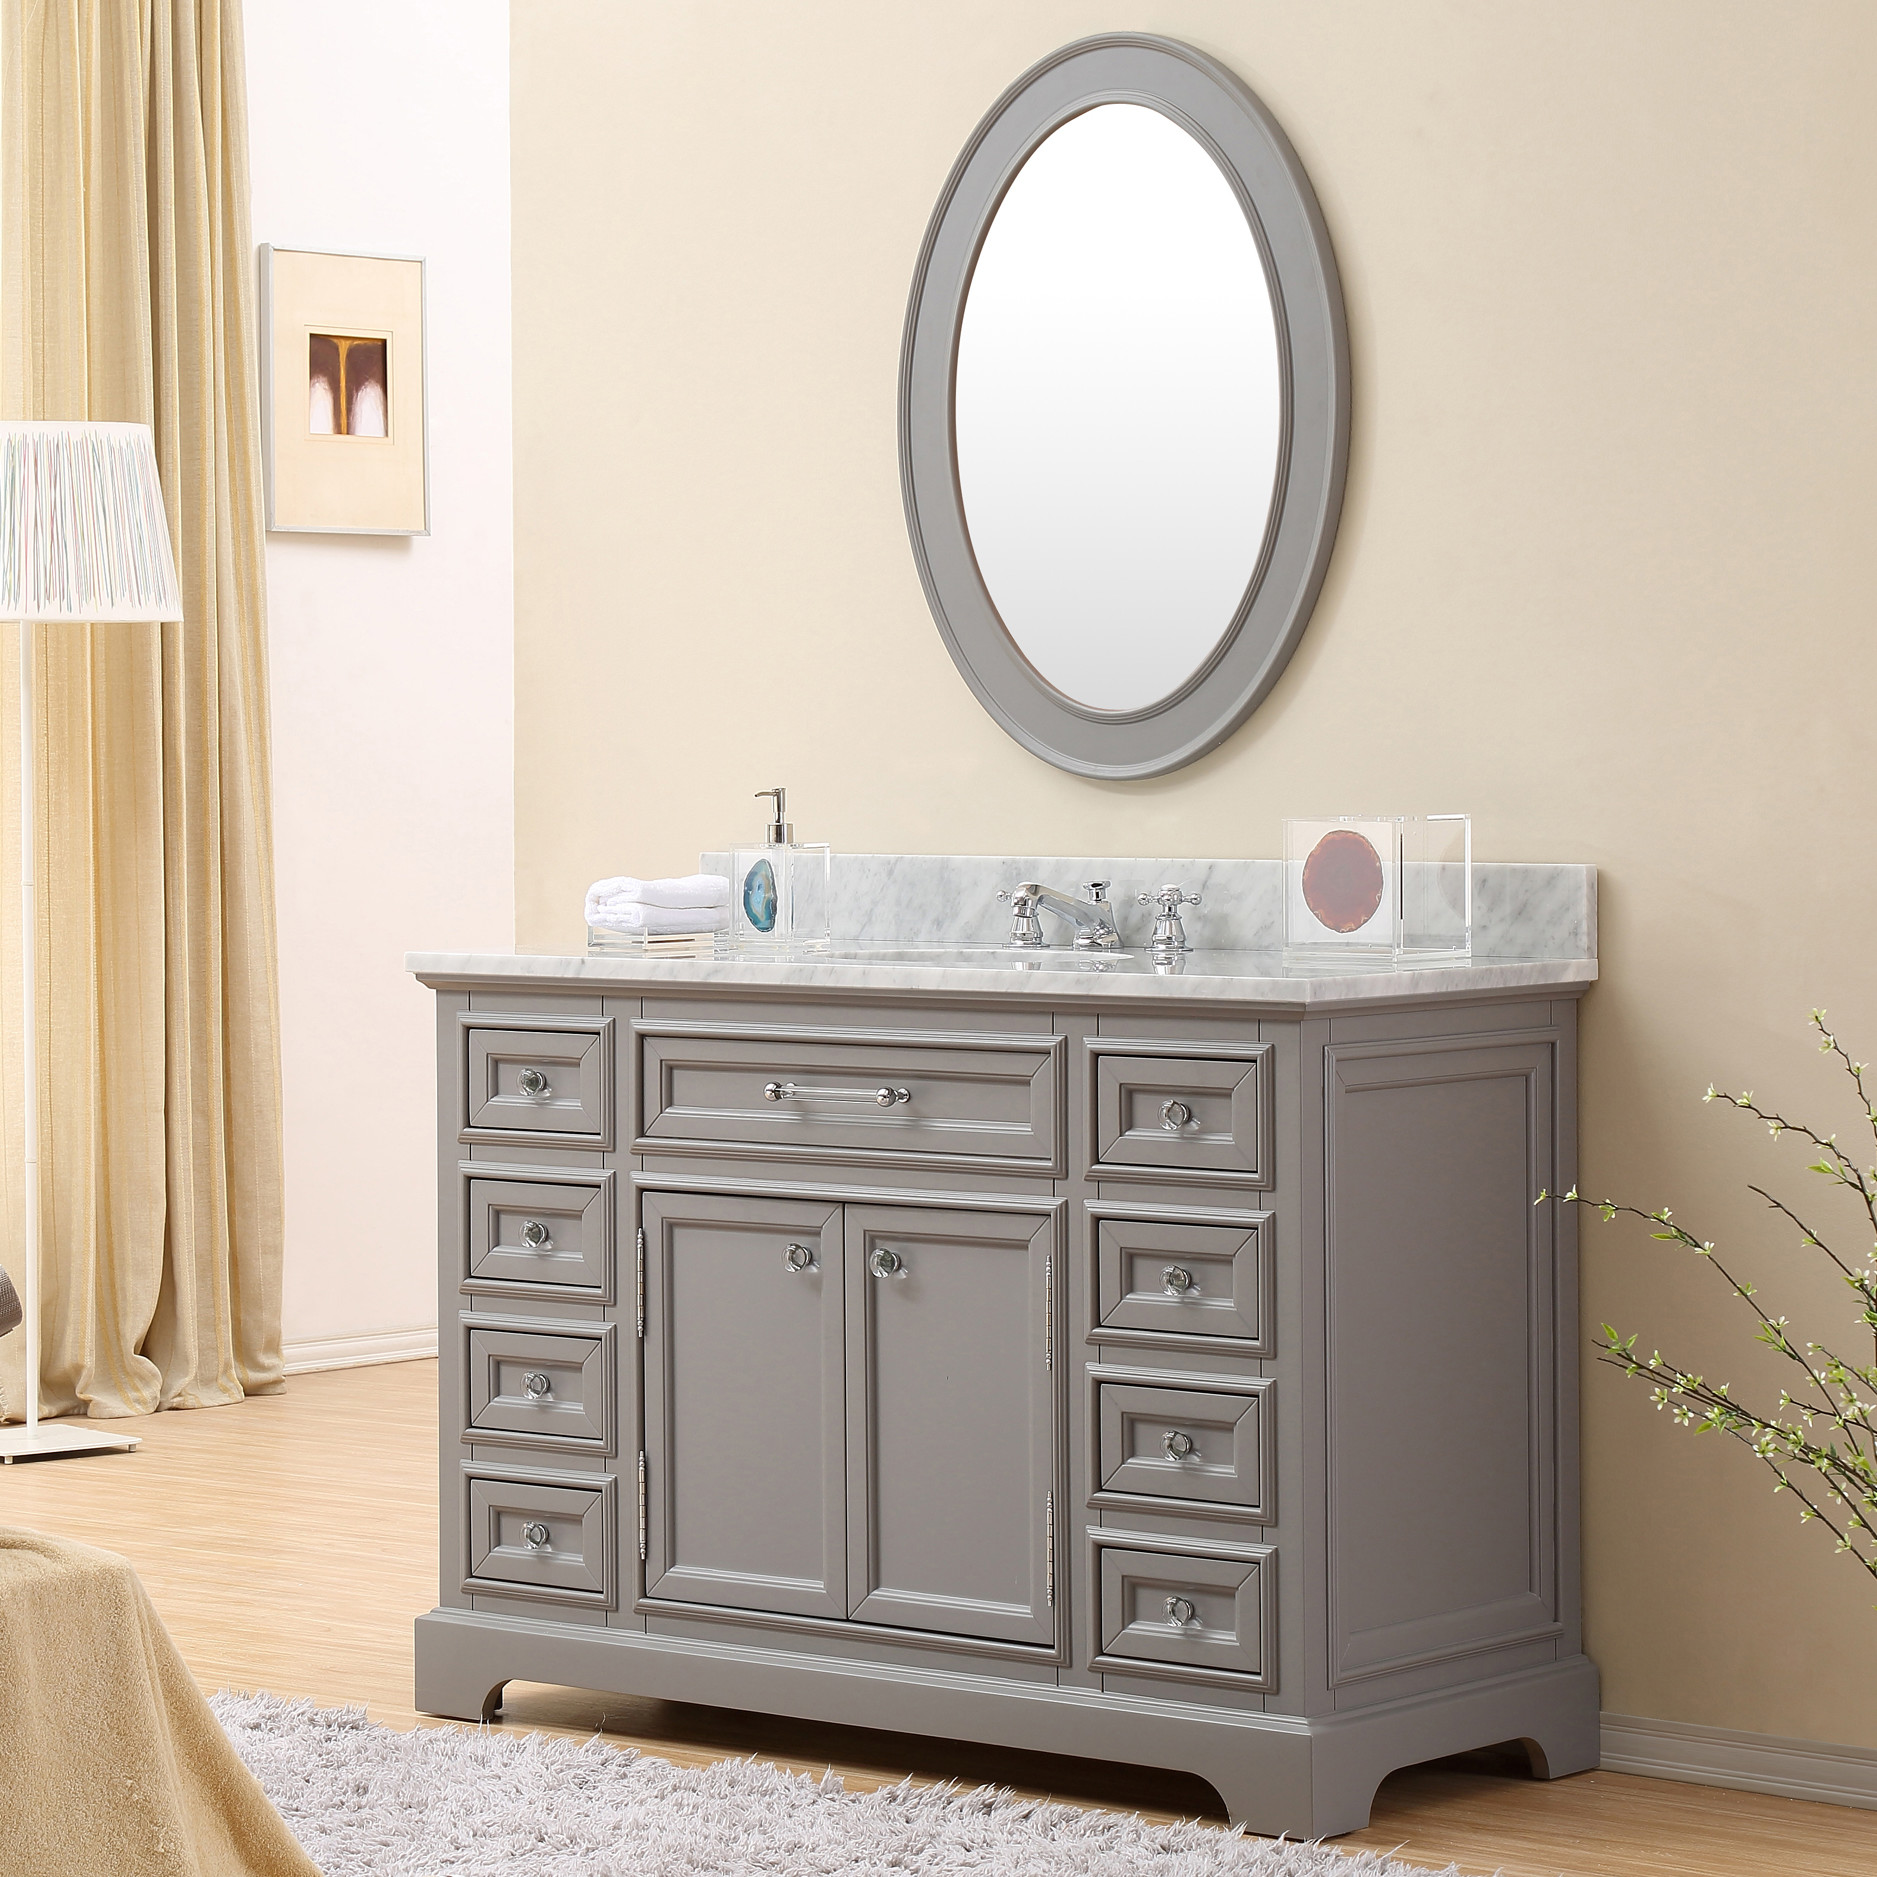 Bathroom Cabinets 48 Inch 48 inch traditional bathroom vanity gray finish